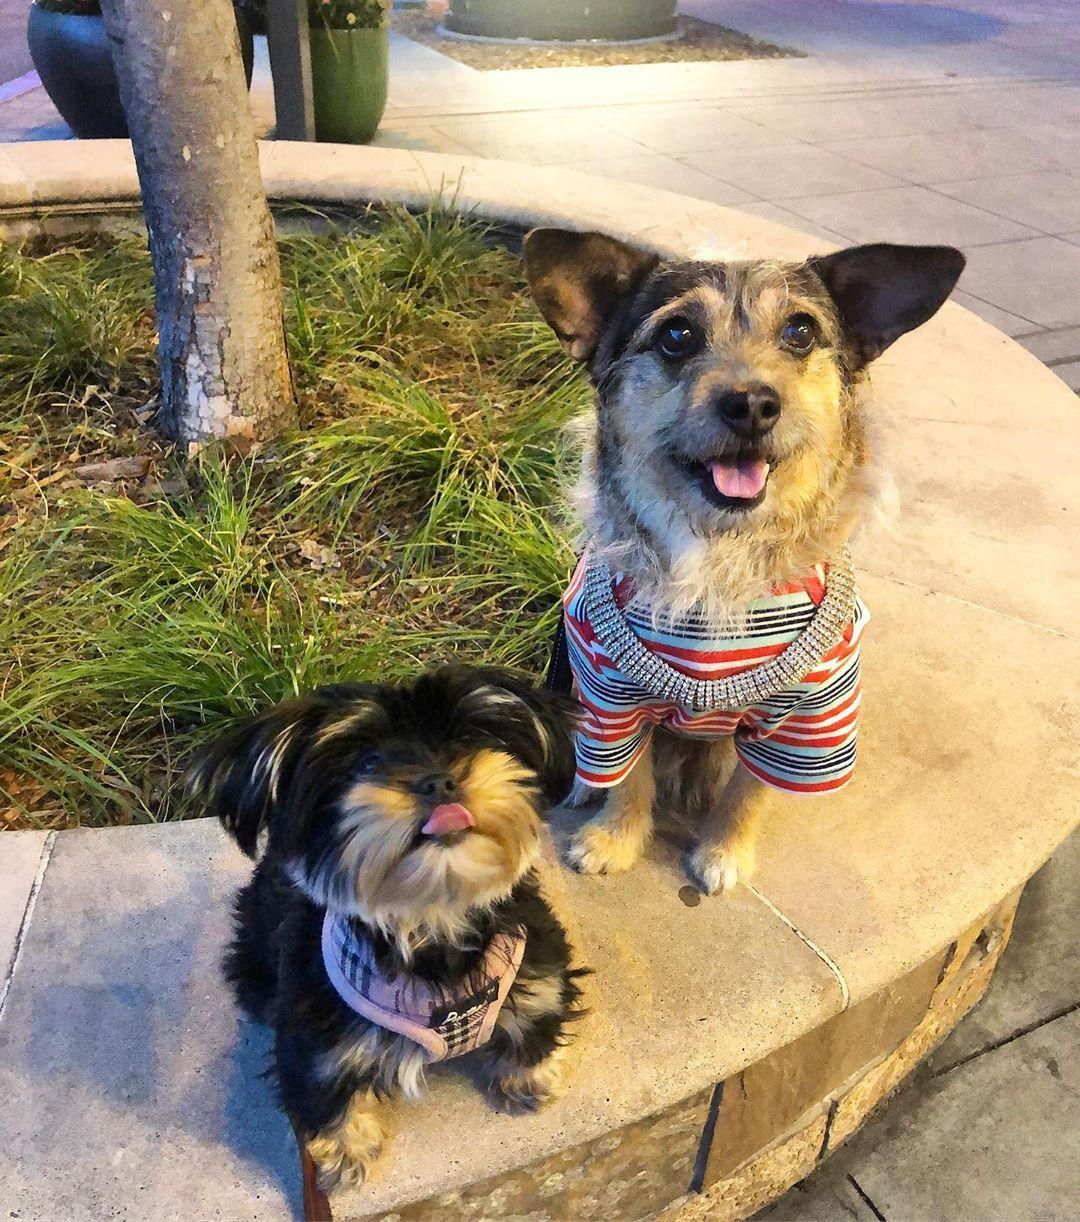 Dogs hang out at Rosie McCann's pet-friendly restaurant in San Jose.